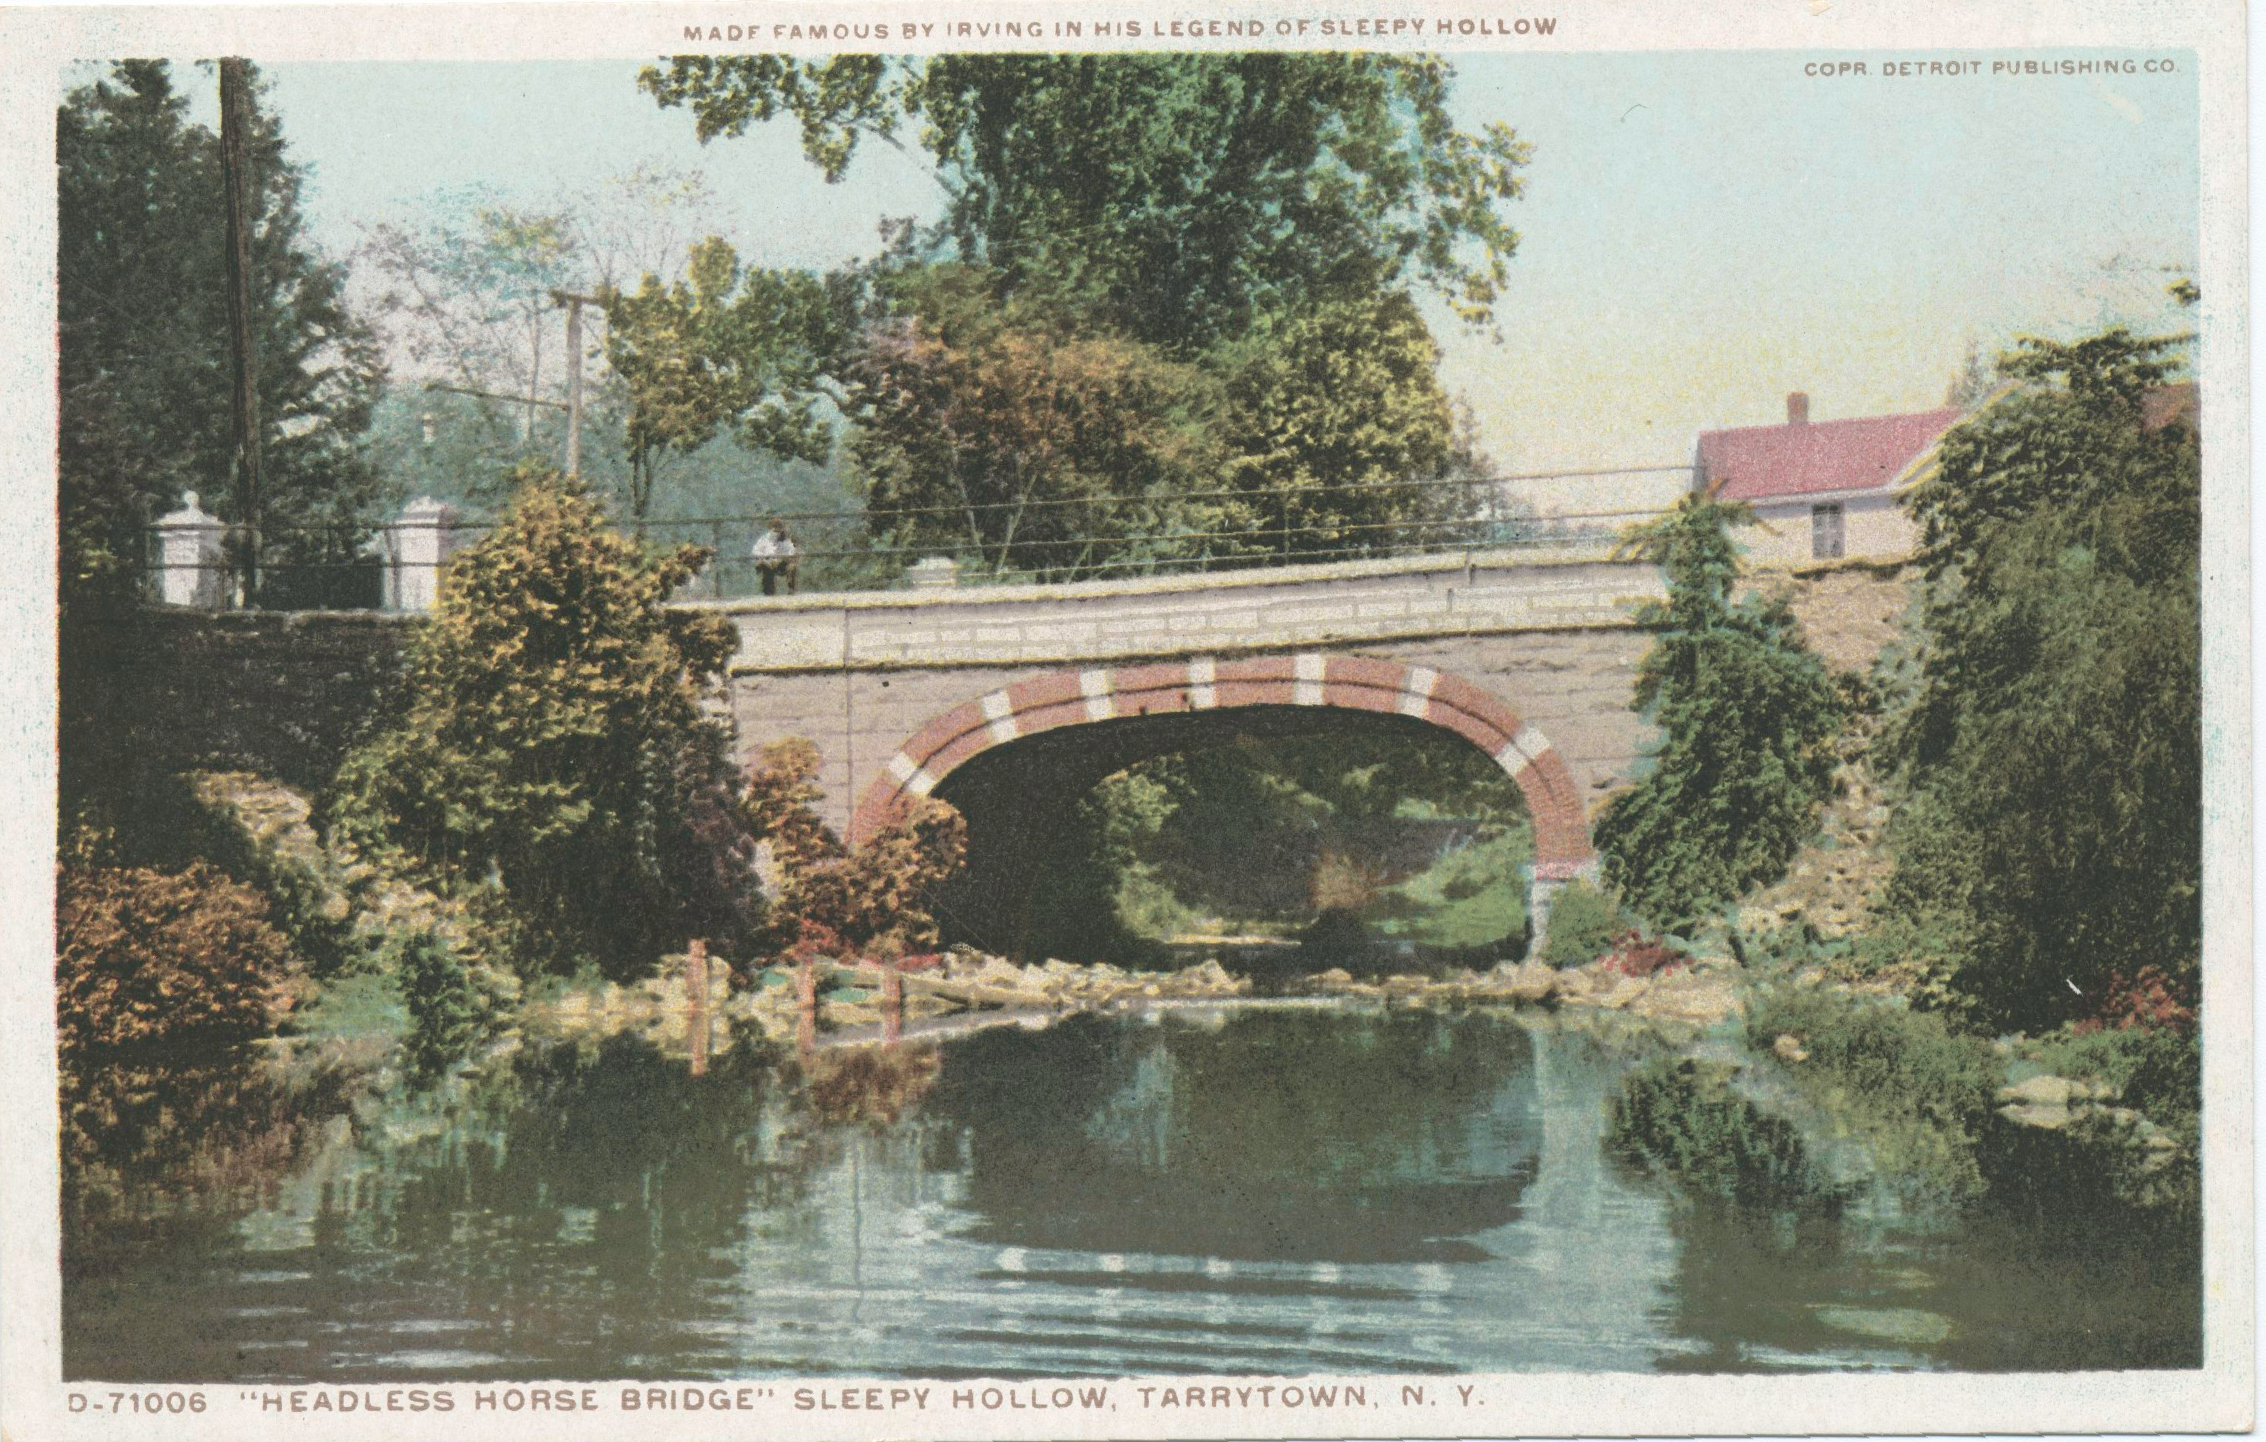 Postcard showing Headless Horseman Bridge, Sleepy Hollow, Tarrytown, N. Y. Published by Detroit Publishing Company, circa 1913-1918. Image from the New York Public Library's Digital Library under the digital ID 56a156d0-c631-012f-4eff-58d385a7bc34.